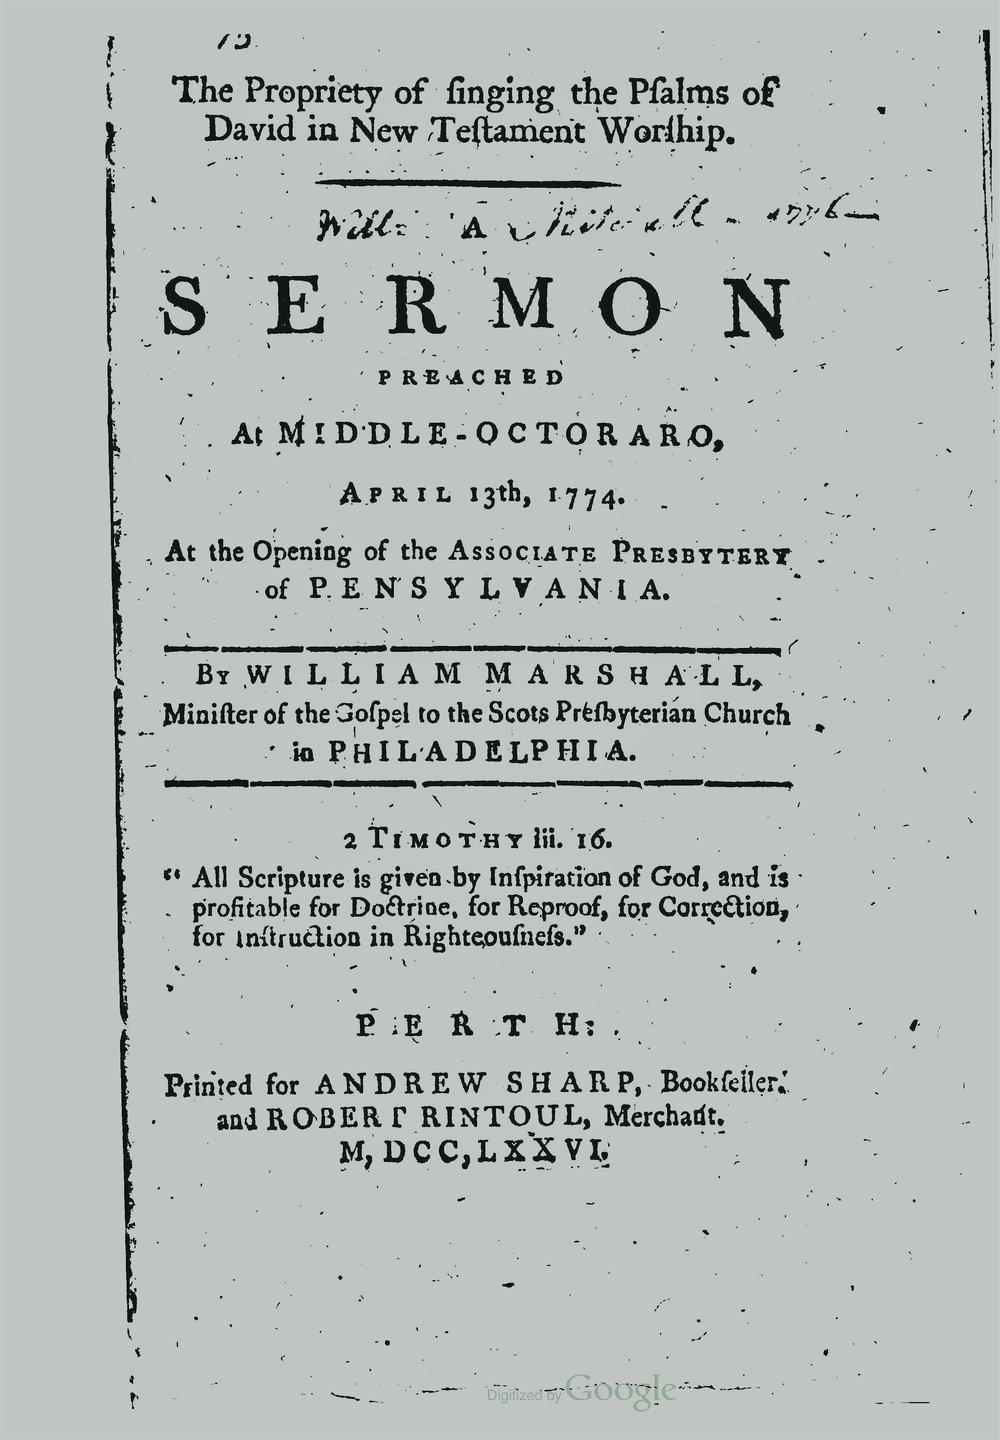 Marshall, William, The Propriety of Singing the Psalms of David in New Testament Worship Title Page.jpg